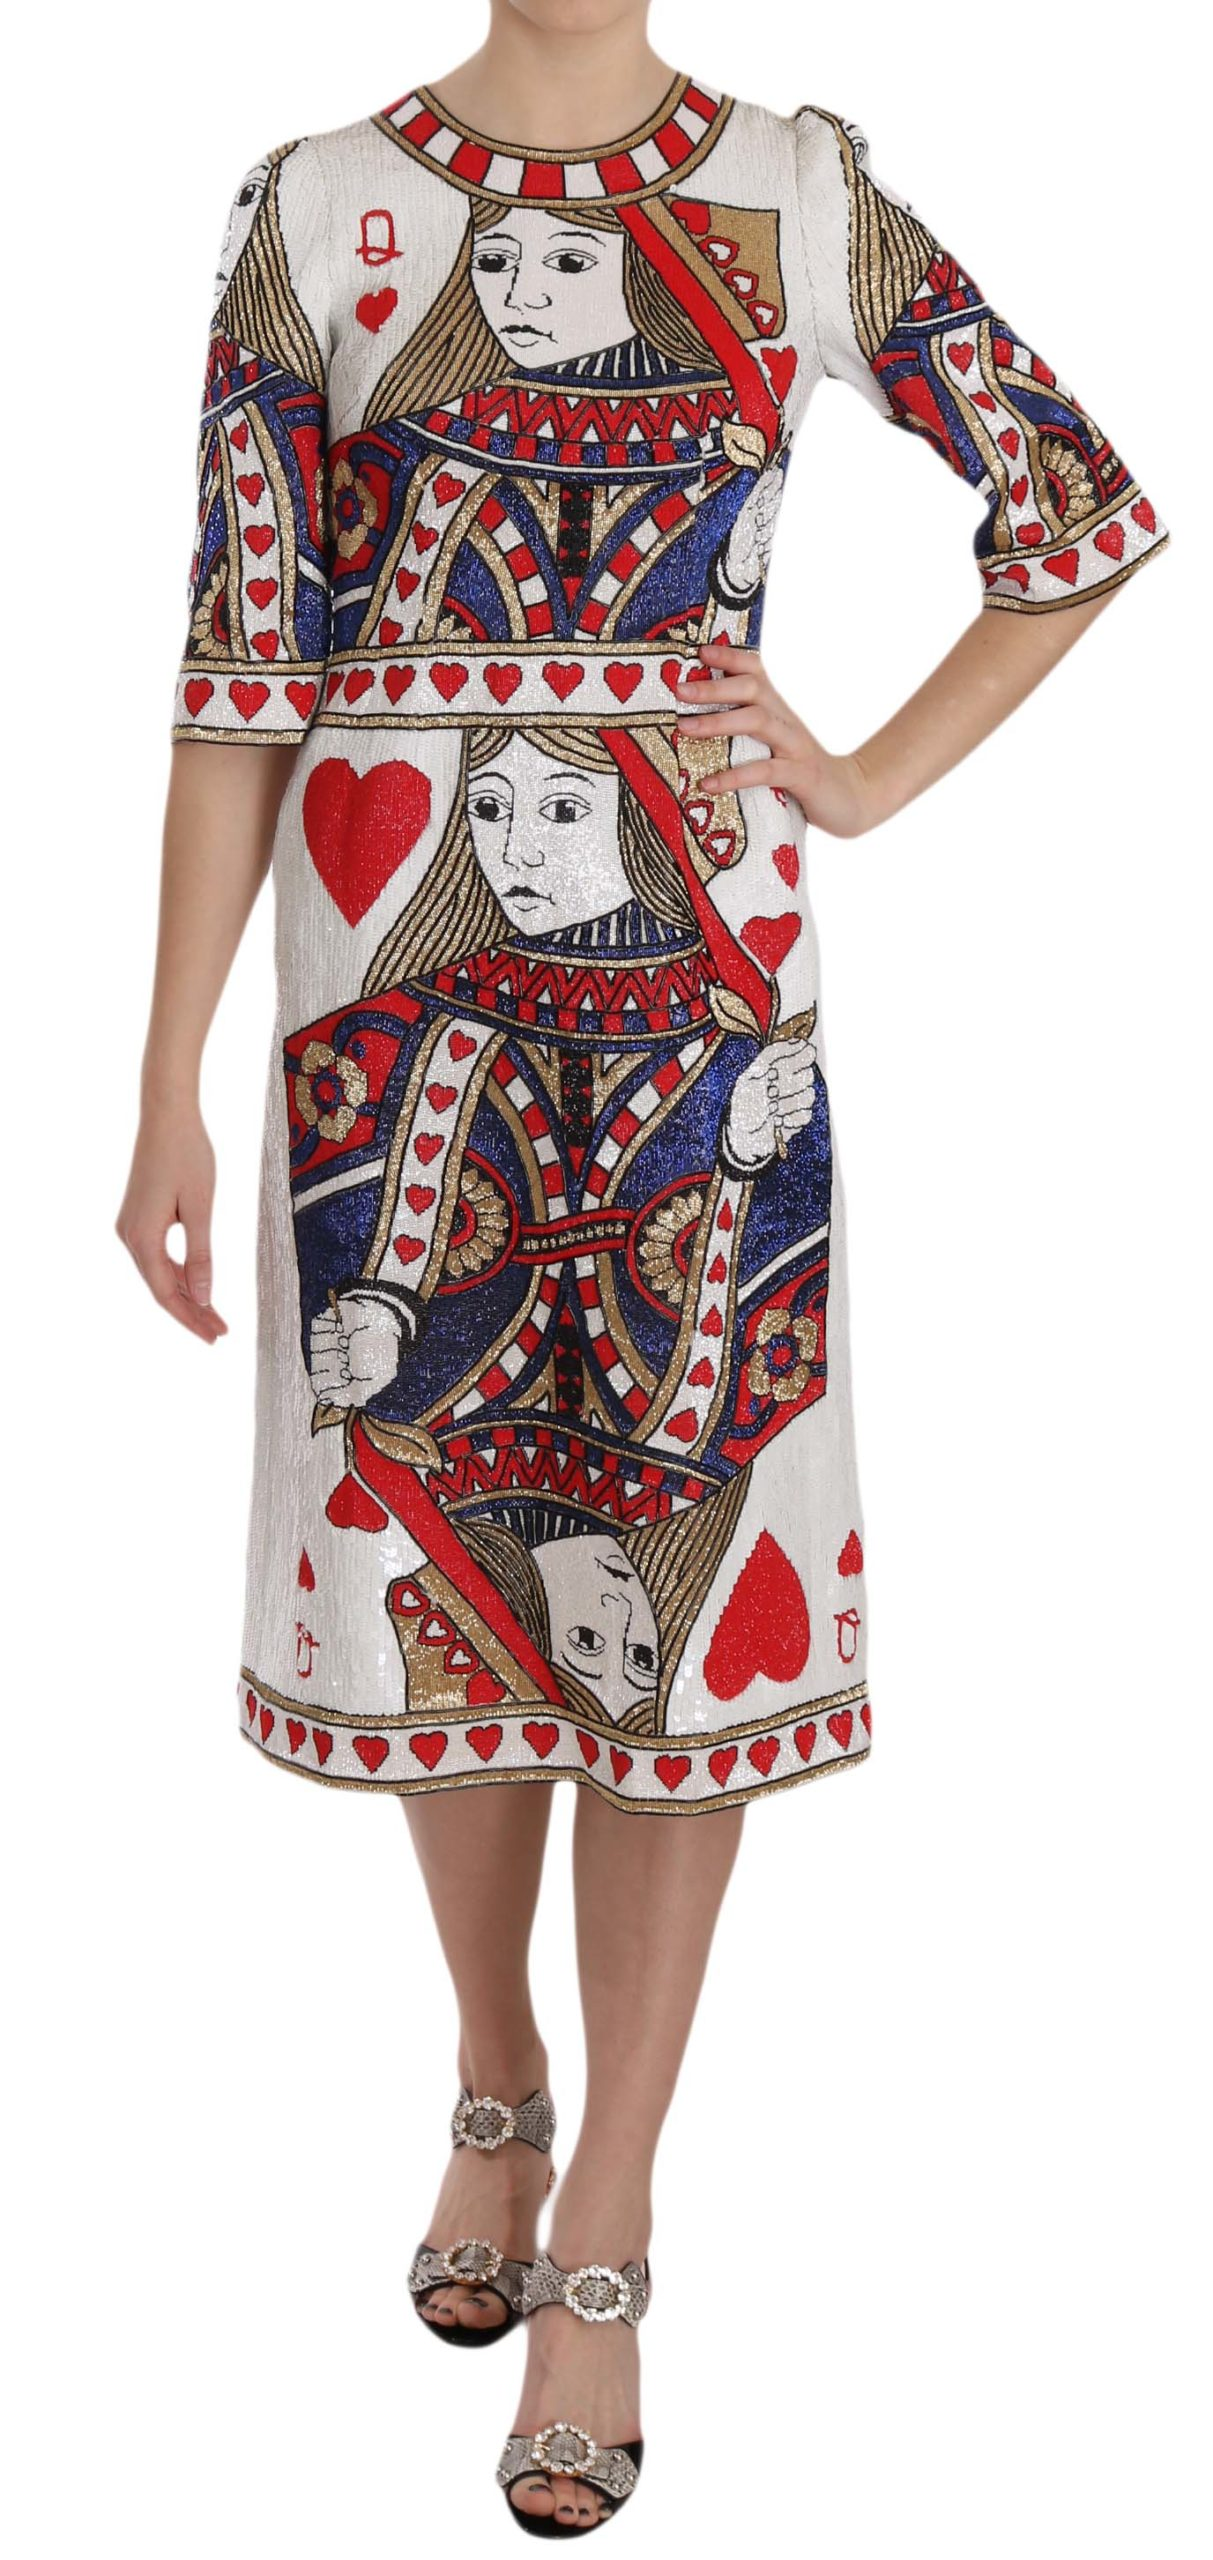 Dolce & Gabbana Women's Queen Of Hearts Card Sequined Dress Multicolor DR1652 - IT40|S